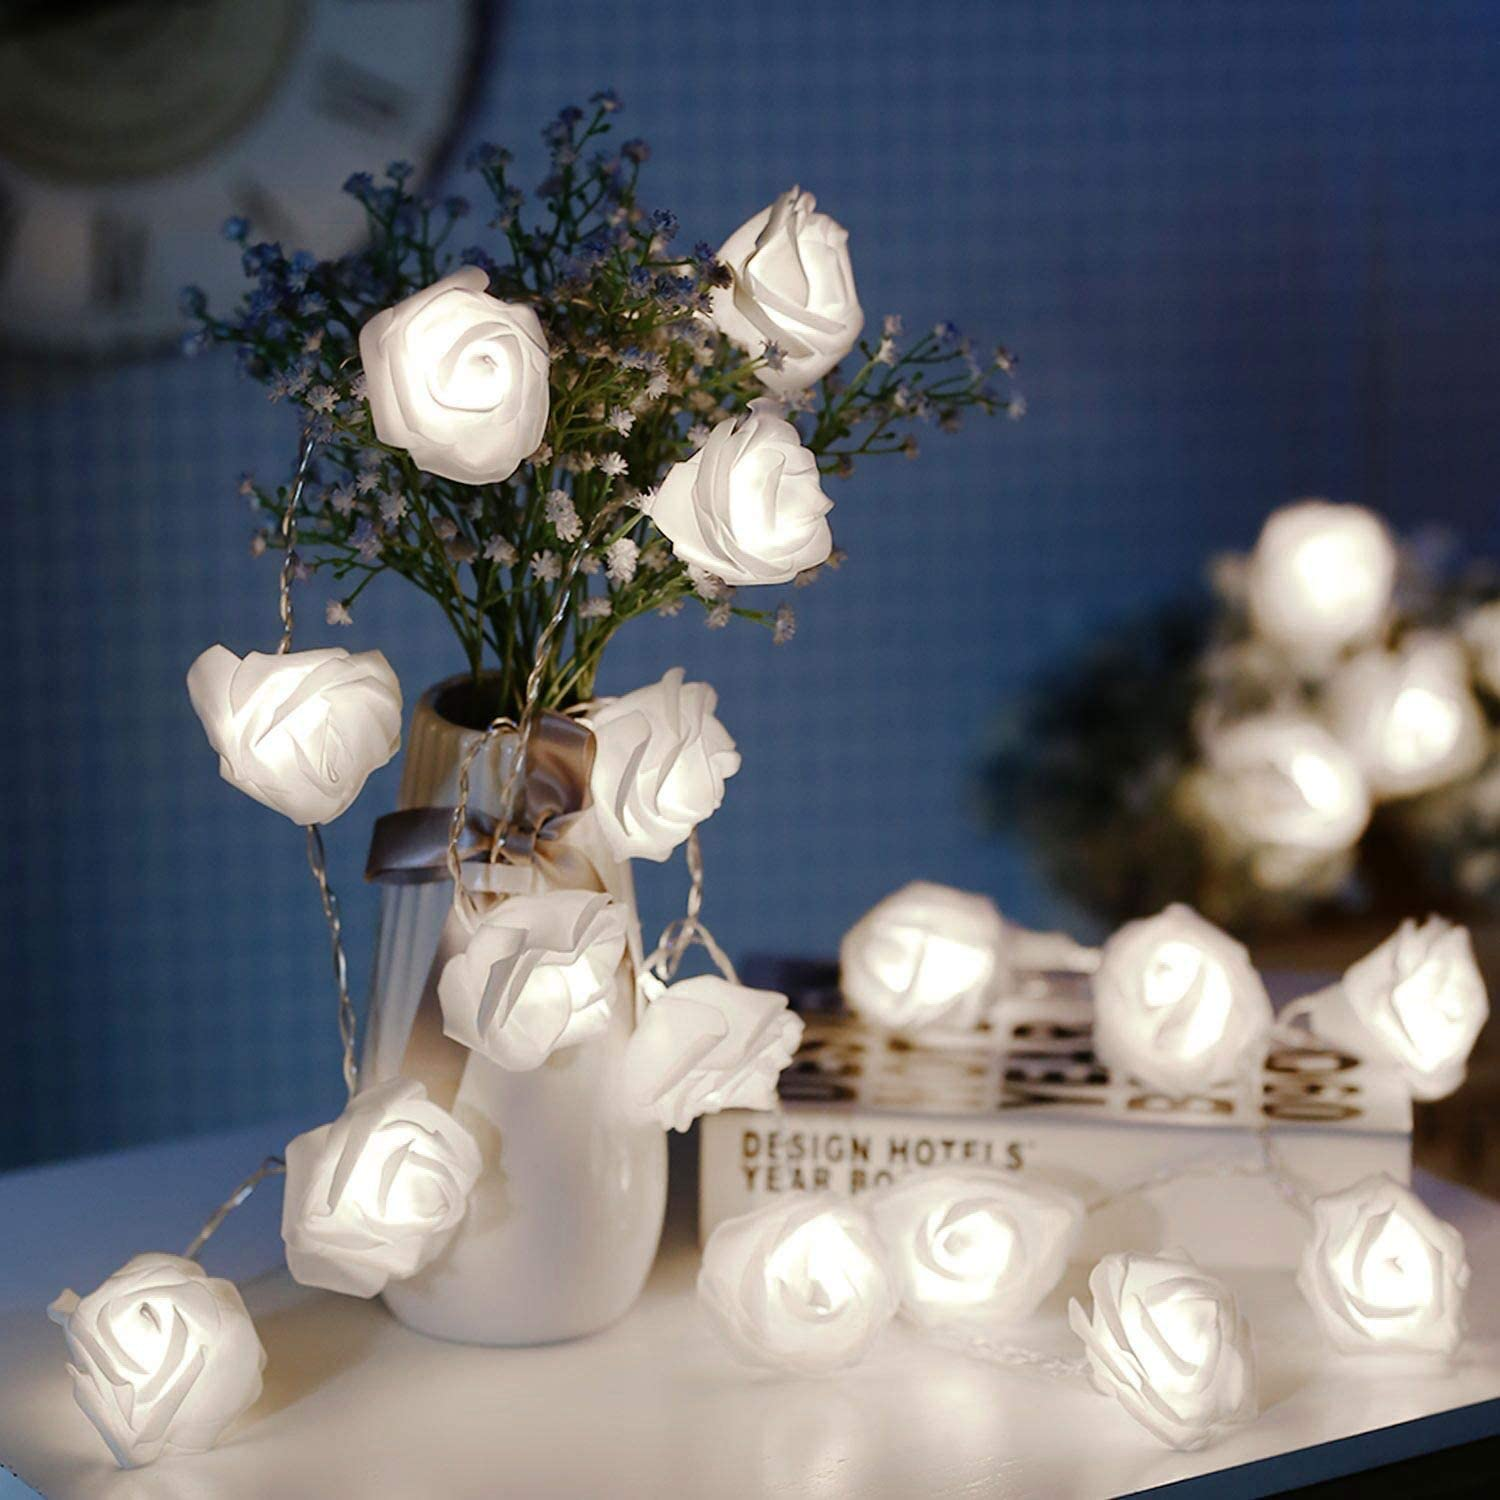 JMEXSUSS 30 LED Battery Operated Year-end gift Sacramento Mall String Premium 16. Rose Lights